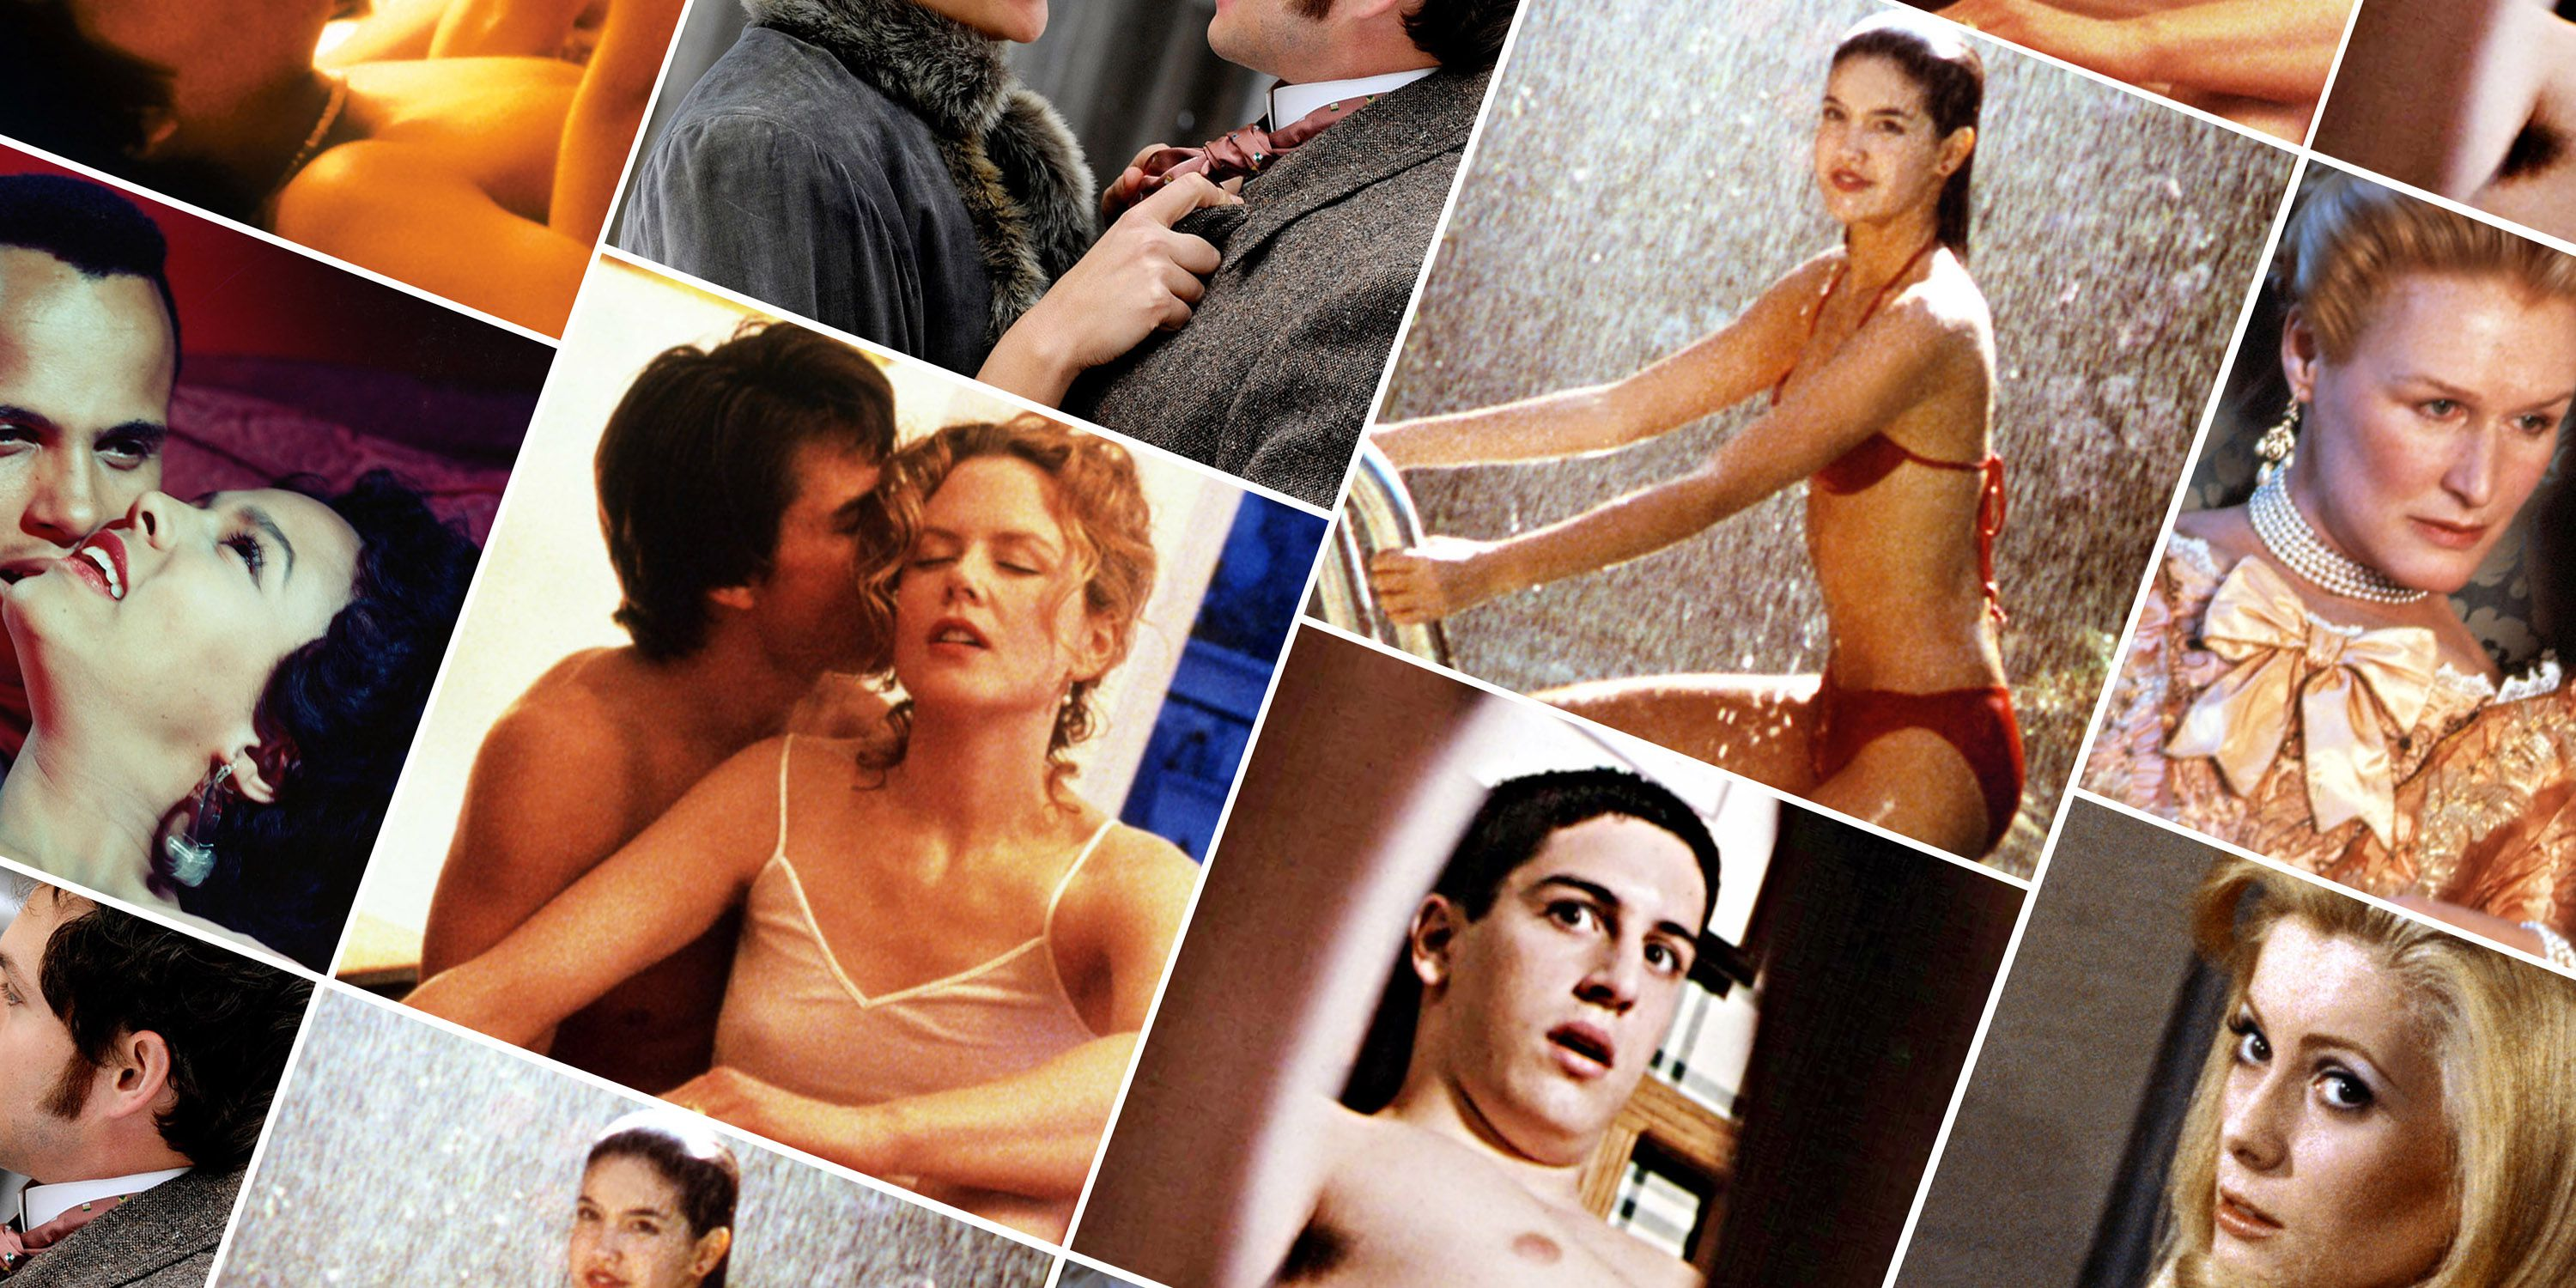 25 Movies About Sex to Watch Now That Tumblr's Banned Porn